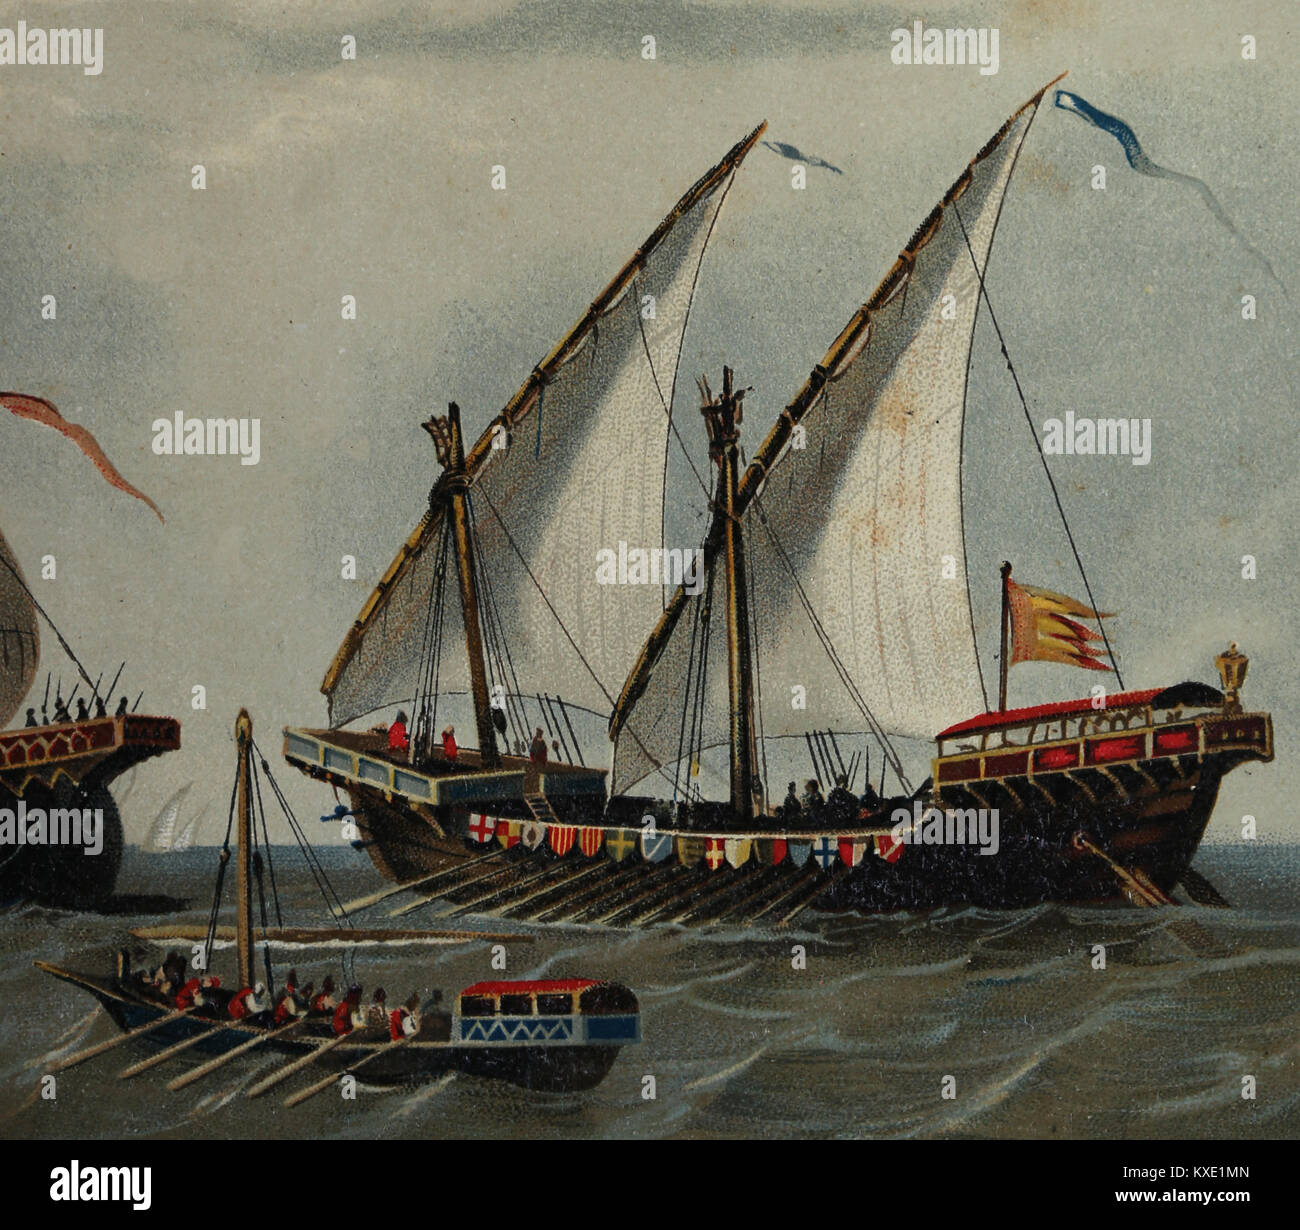 Middle age. Caravel. illustration, 1879. Color. Europe. - Stock Image